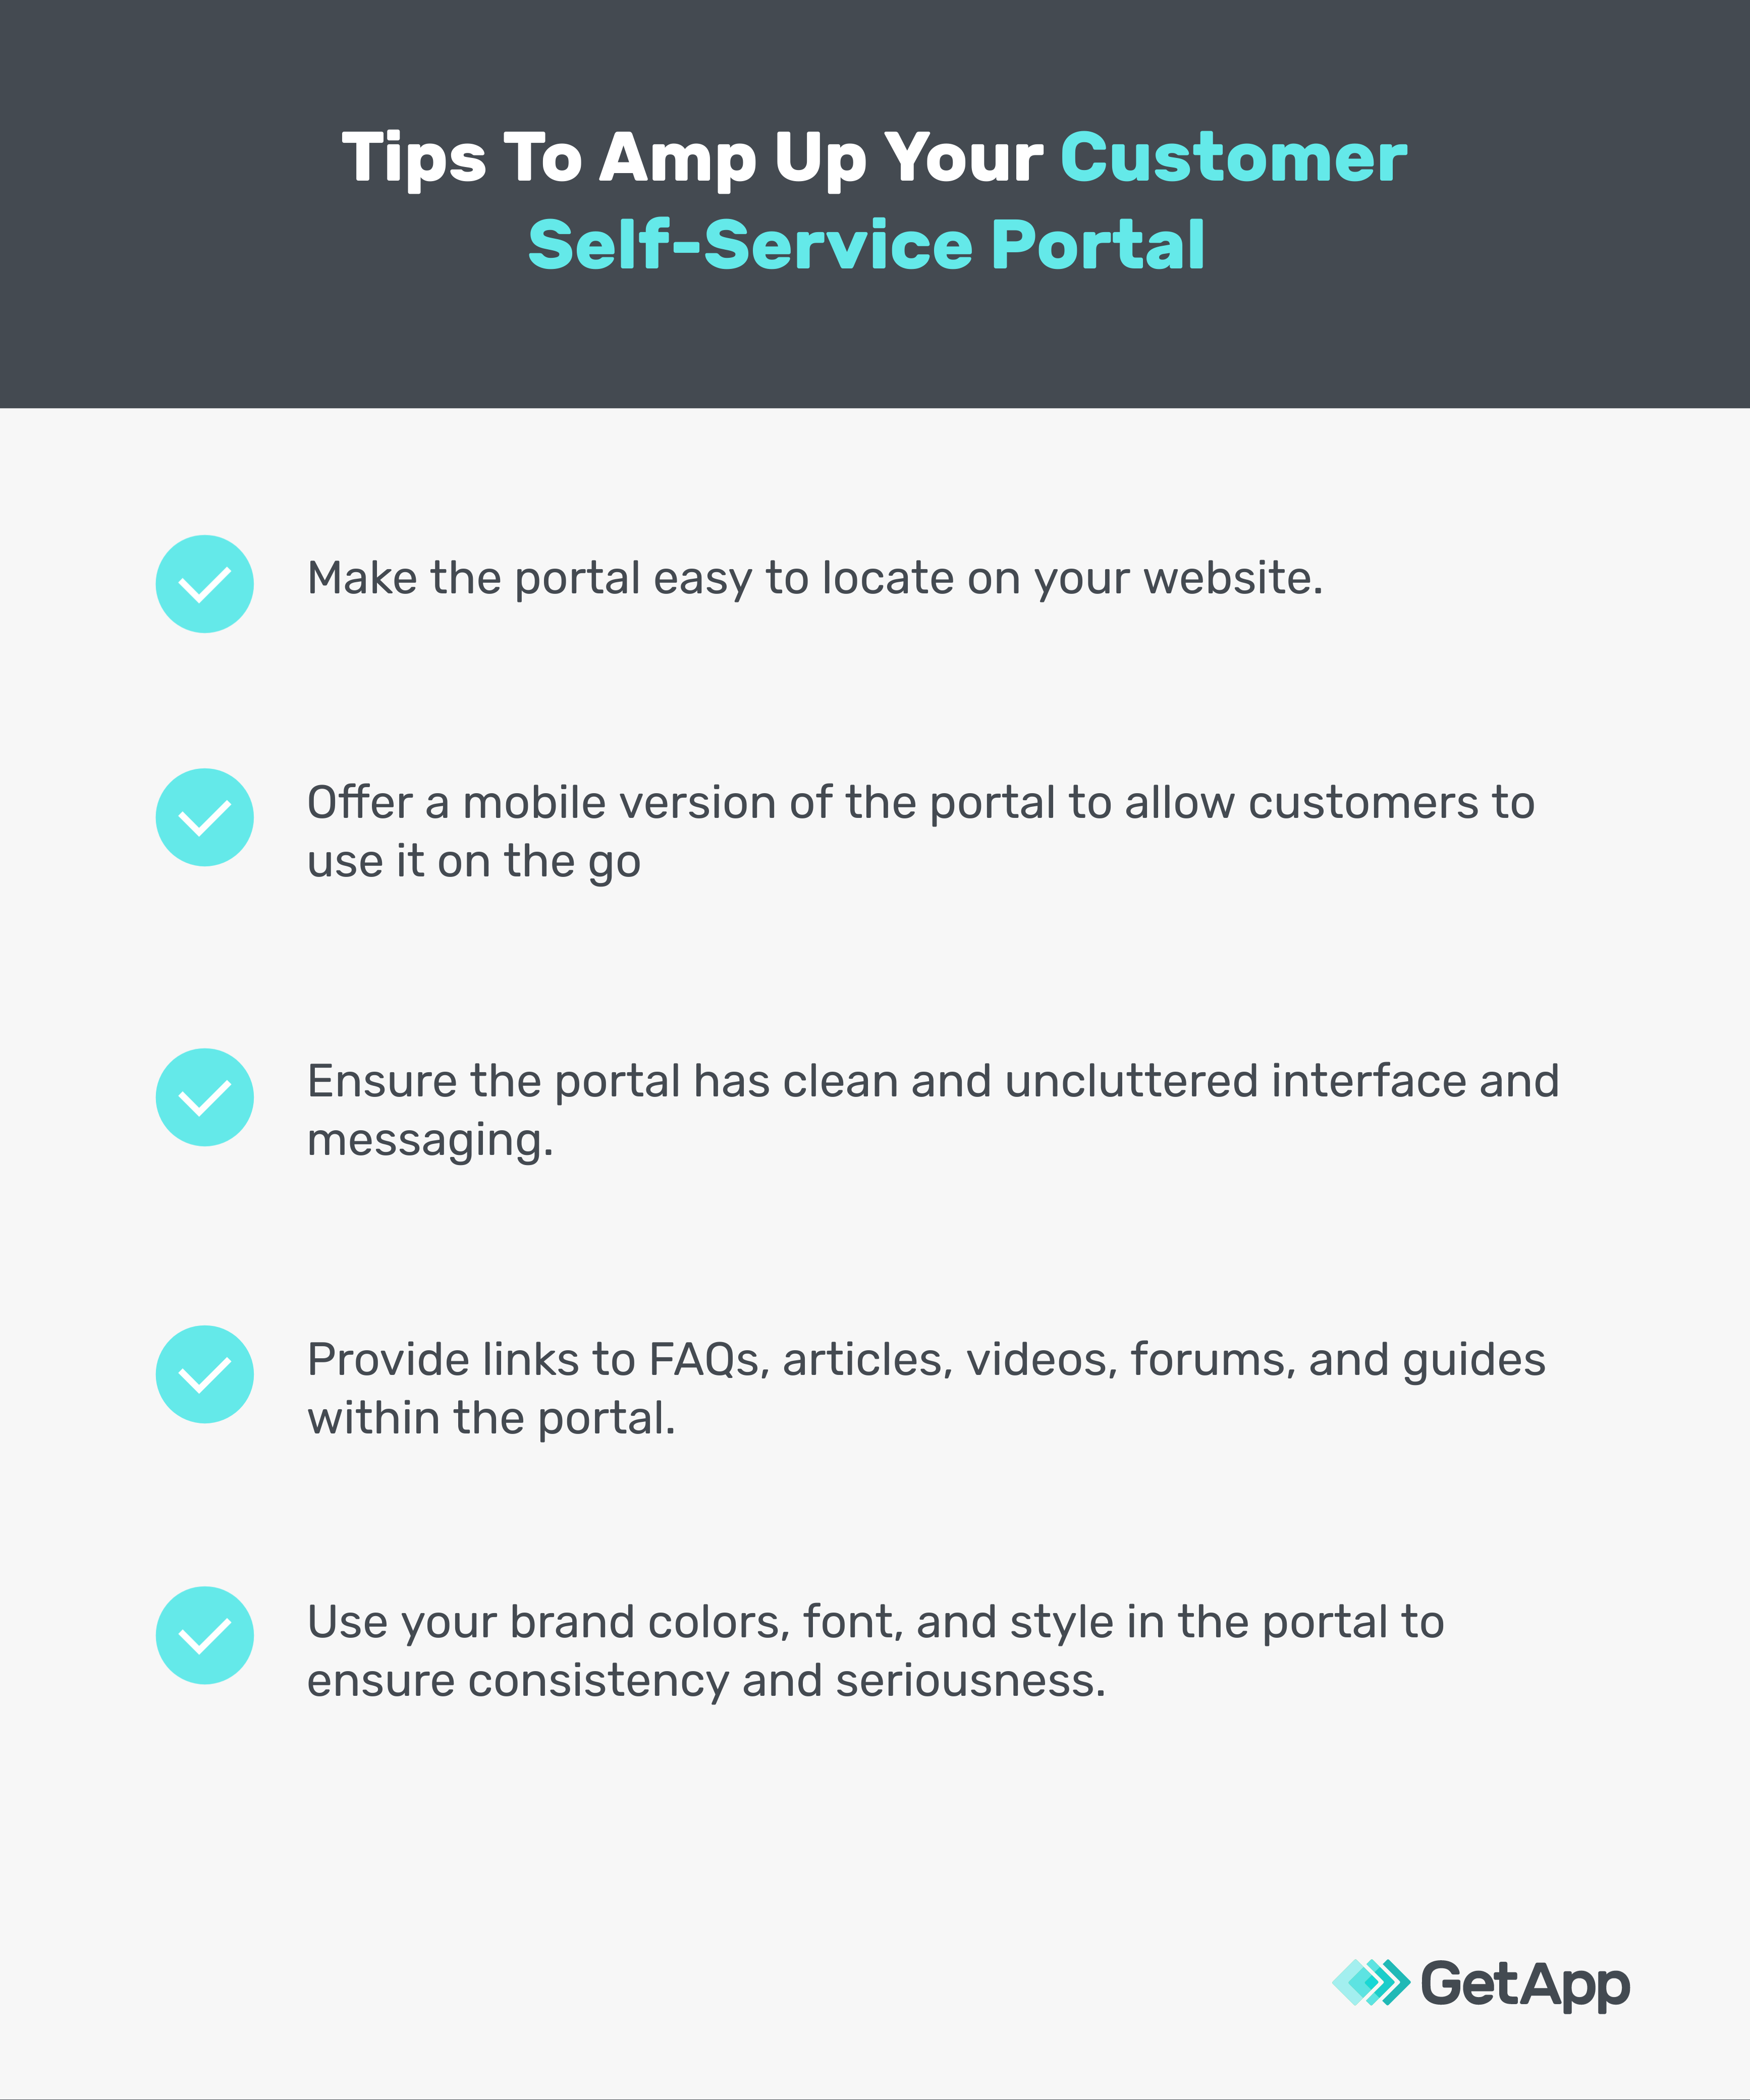 Tips to amp up customer self service portal